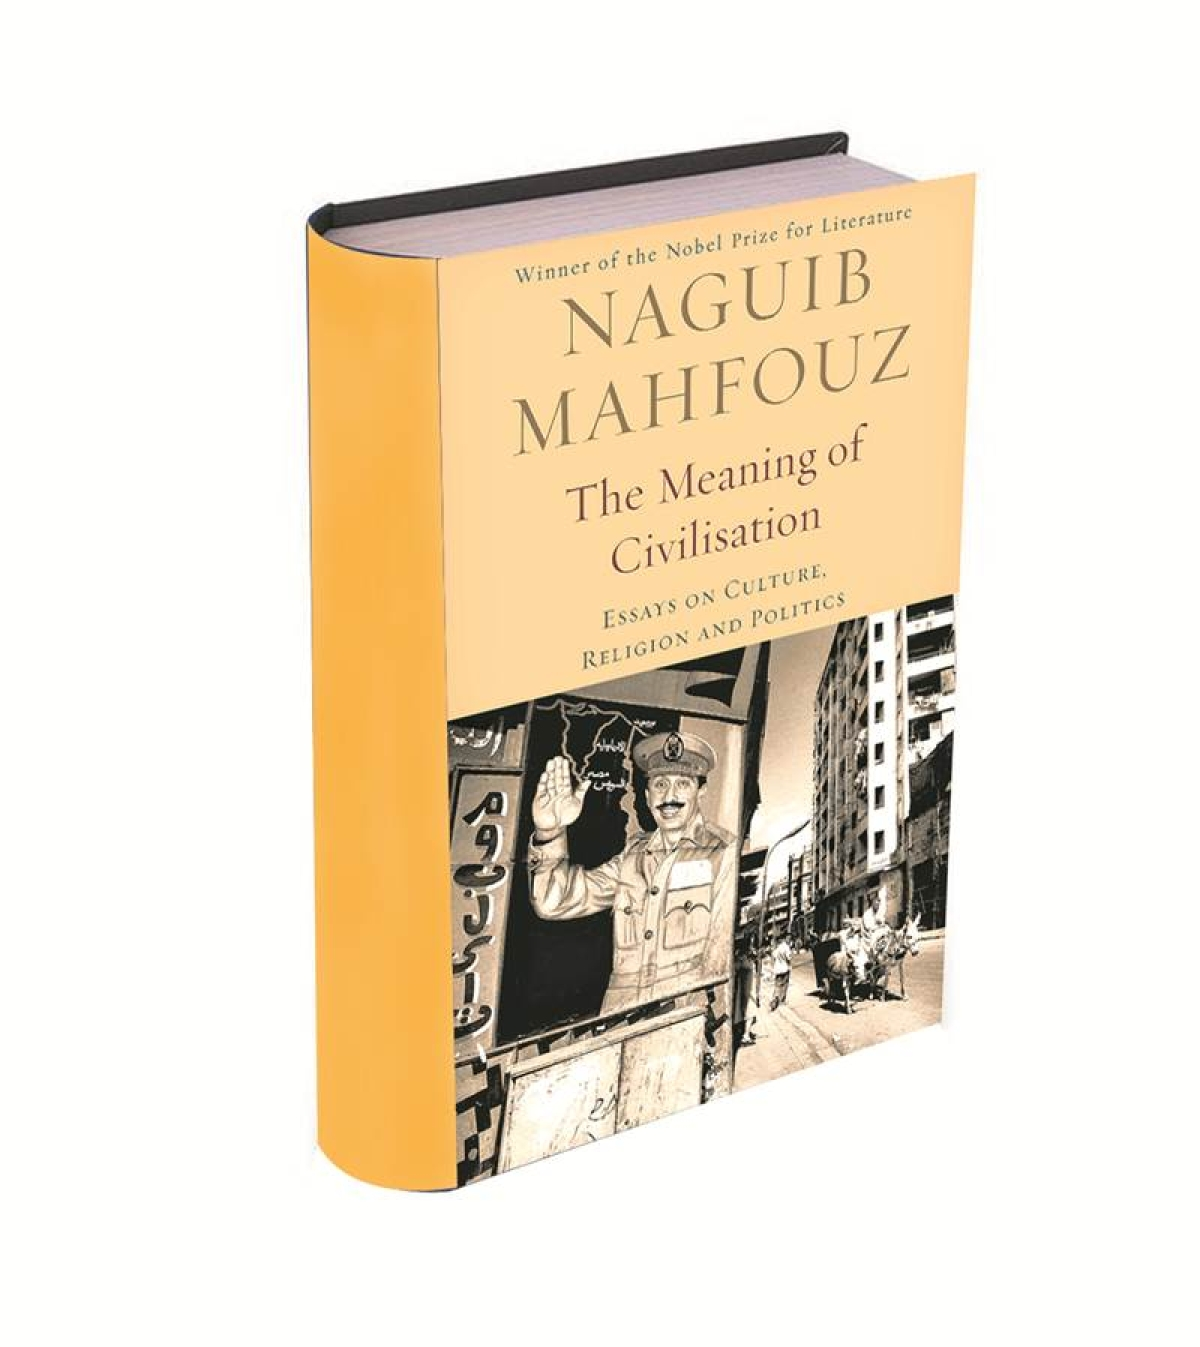 The Meaning of Civilisation by Naguib Mahfouz: Review